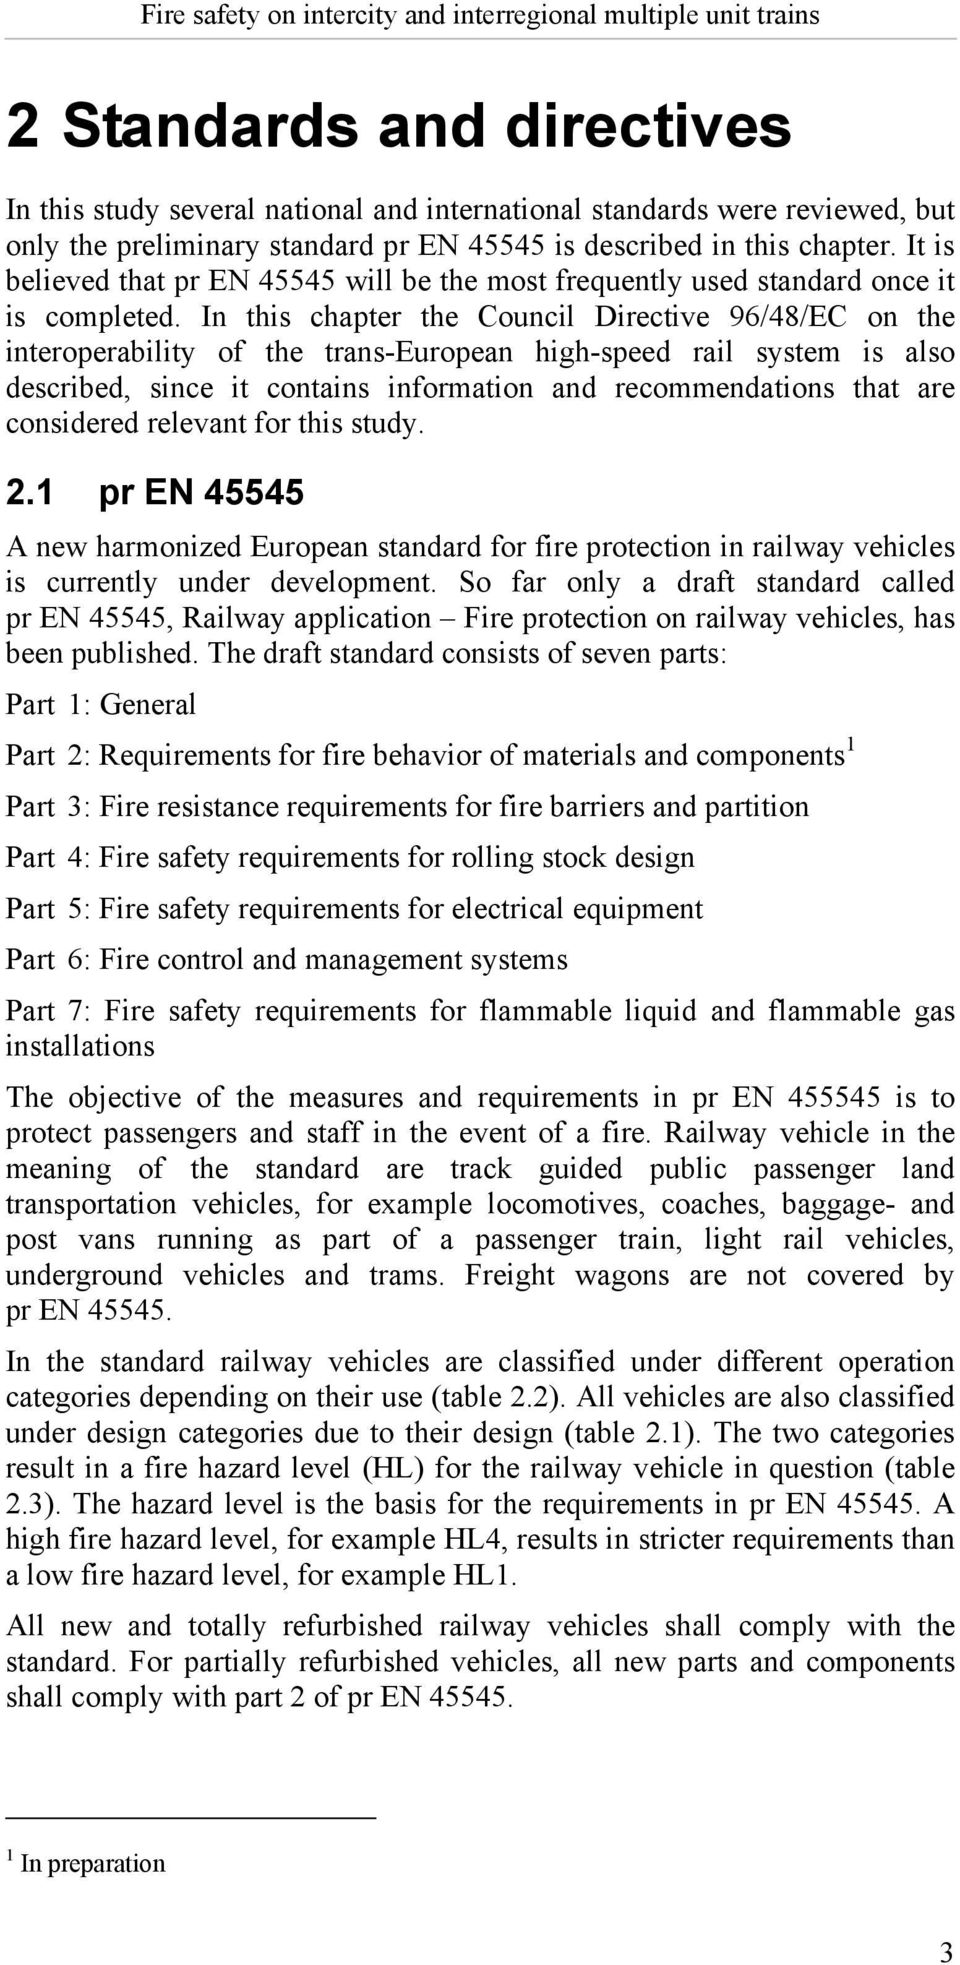 In this chapter the Council Directive 96/48/EC on the interoperability of the trans-european high-speed rail system is also described, since it contains information and recommendations that are